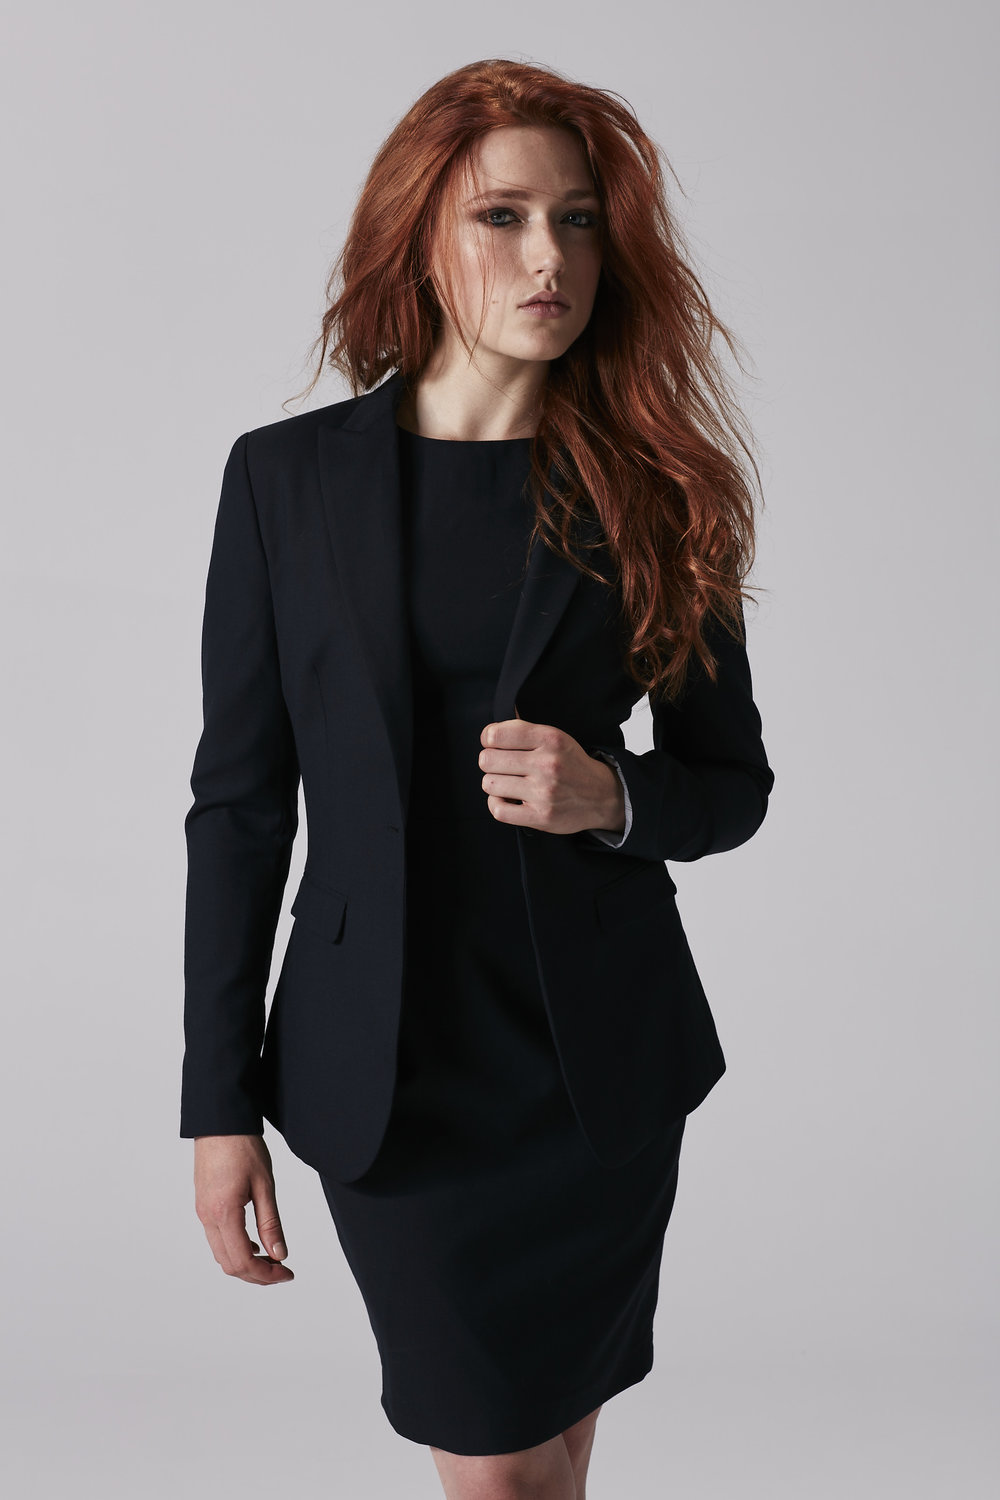 how to wear a suit like a bossisadora nim women s tailoring to increase the life of the suit we recommend alternating bottoms to avoid over wearing the same pieces and allowing some rotation